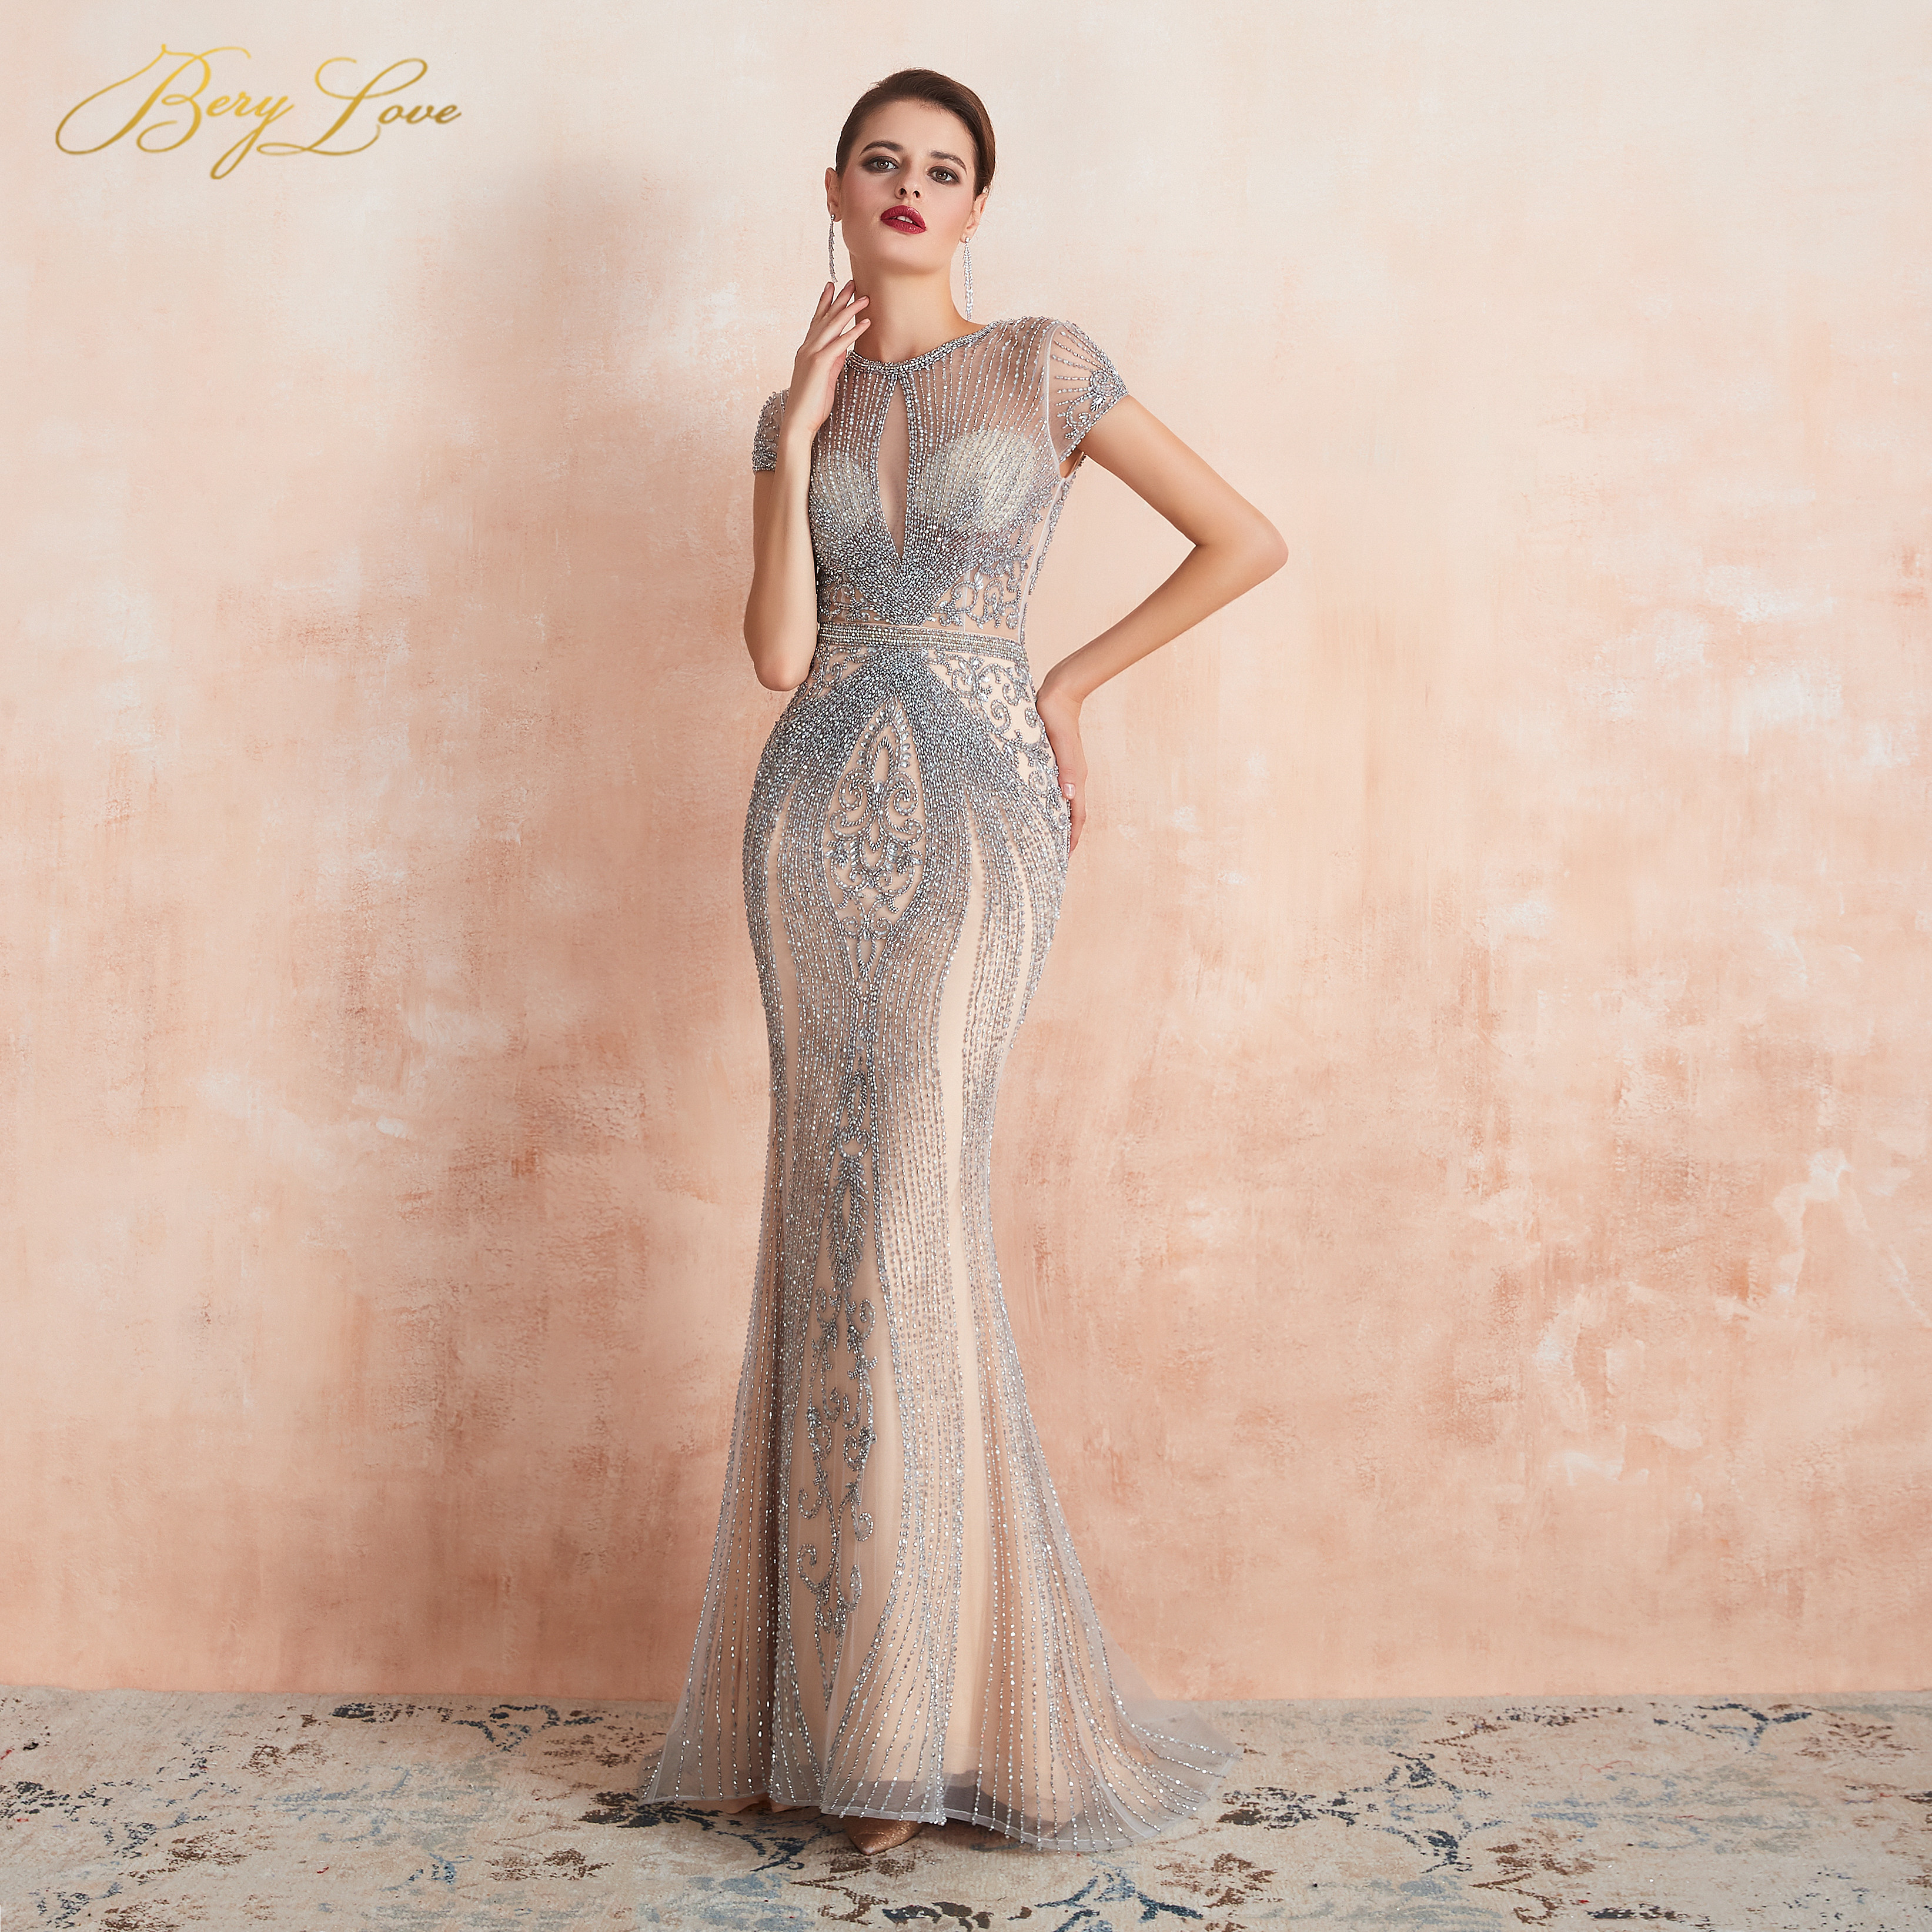 BeryLove 2020 Luxury Rhinestones Nude Mermaid Evening Dress Cap Sleeves Long Evening Pageant Dresses Formal Gown Robe De Soiree